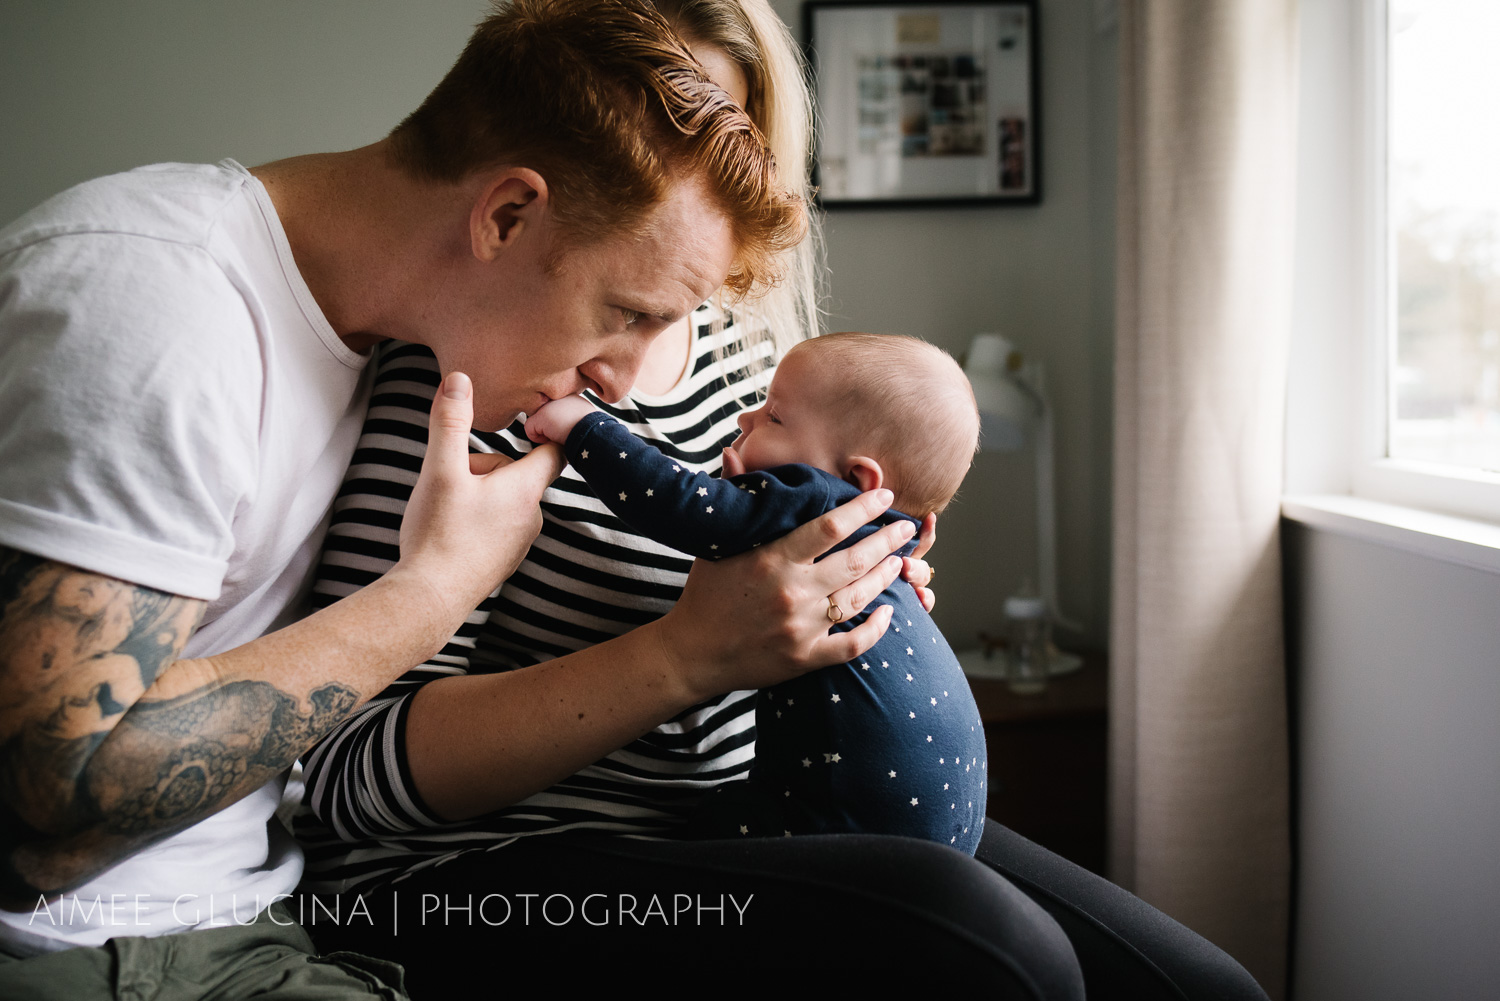 Lifestyle images of Fathers by Aimee Glucina Photography-18.jpg